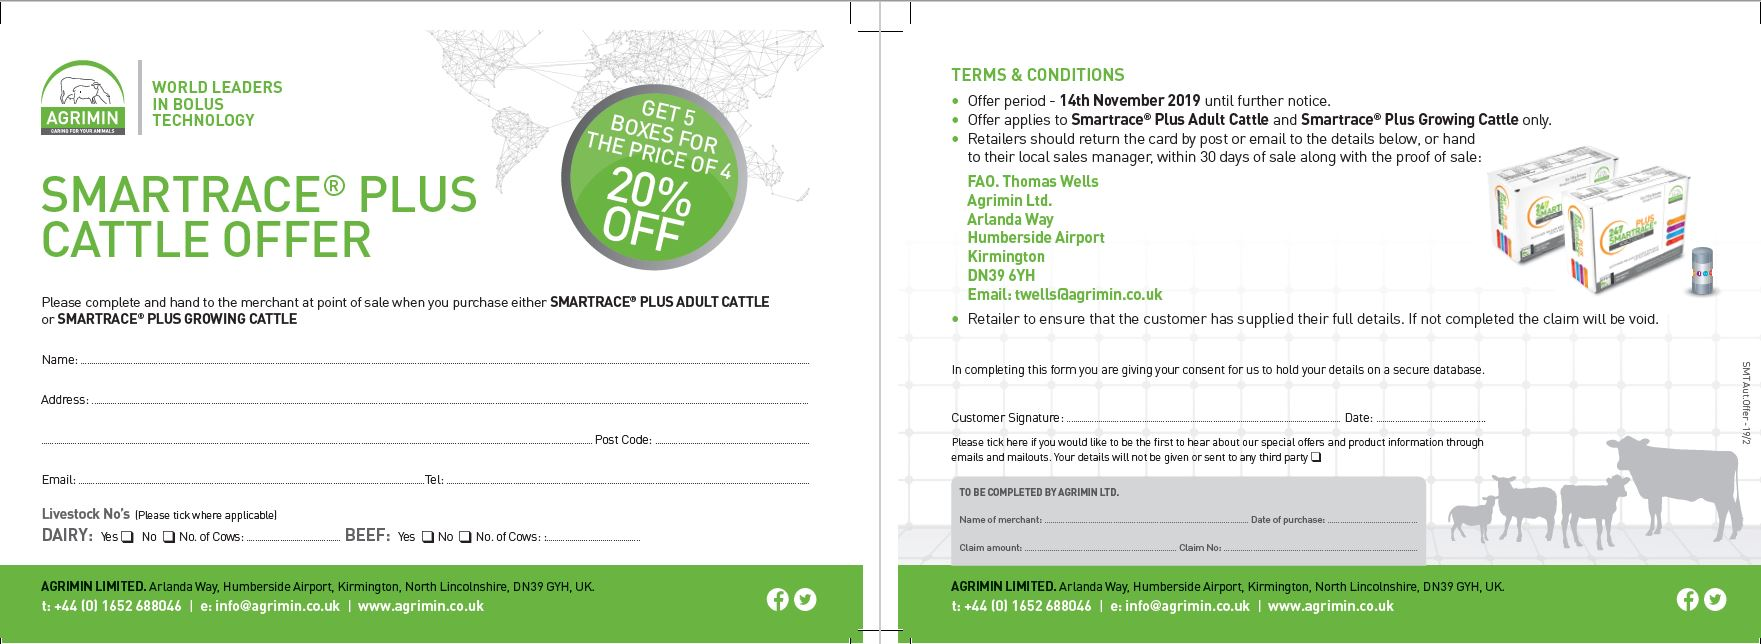 Image of offer card